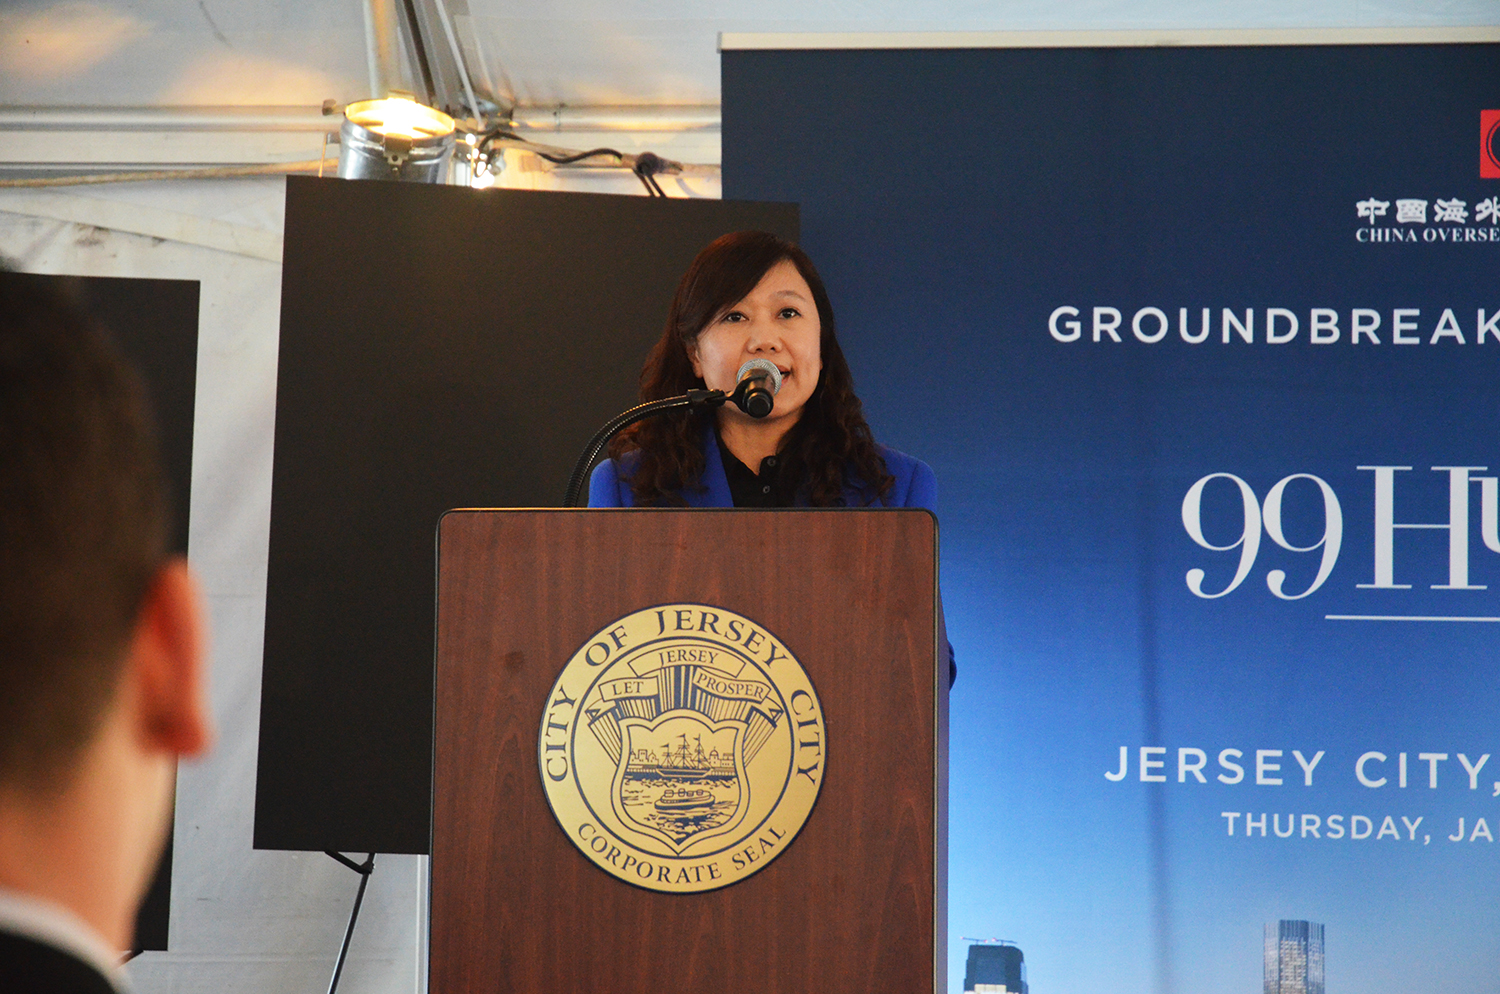 Cindy Xu speaks at the groundbreaking for 99 Hudson Street.